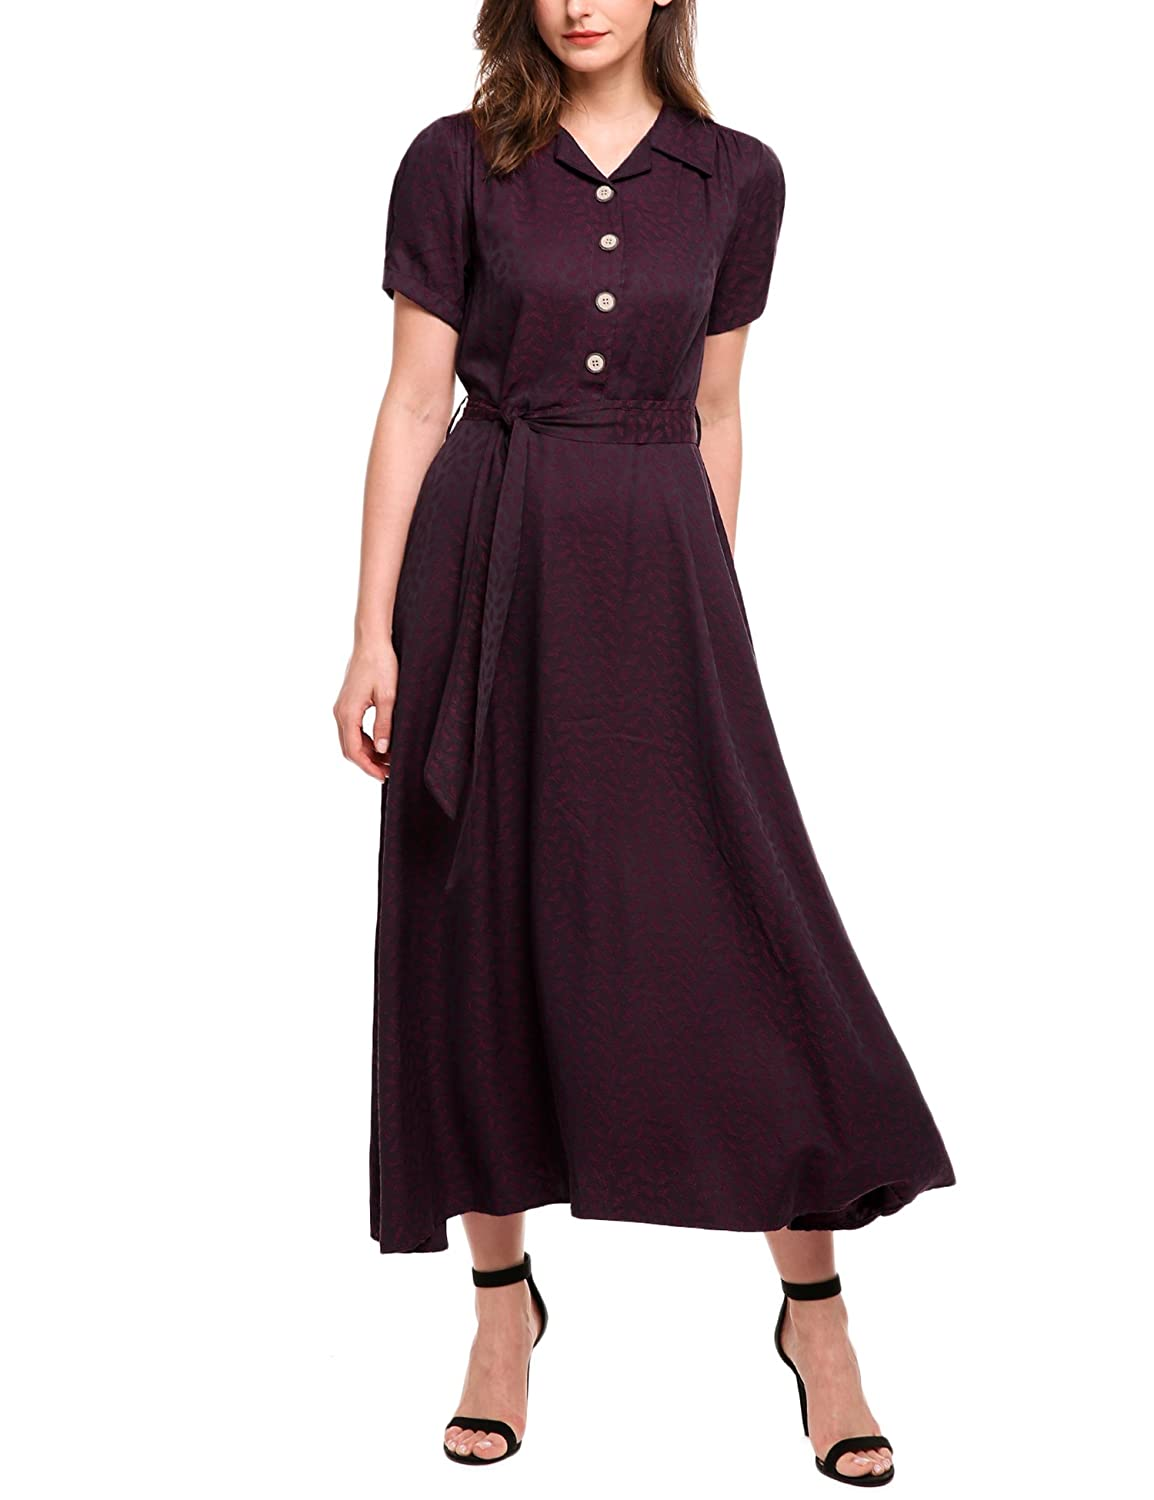 1930s Dresses | 30s Art Deco Dress ACEVOG Women Vintage Style Turn Down Collar Short Sleeve High Waist Maxi Swing Dress with Belt $38.99 AT vintagedancer.com